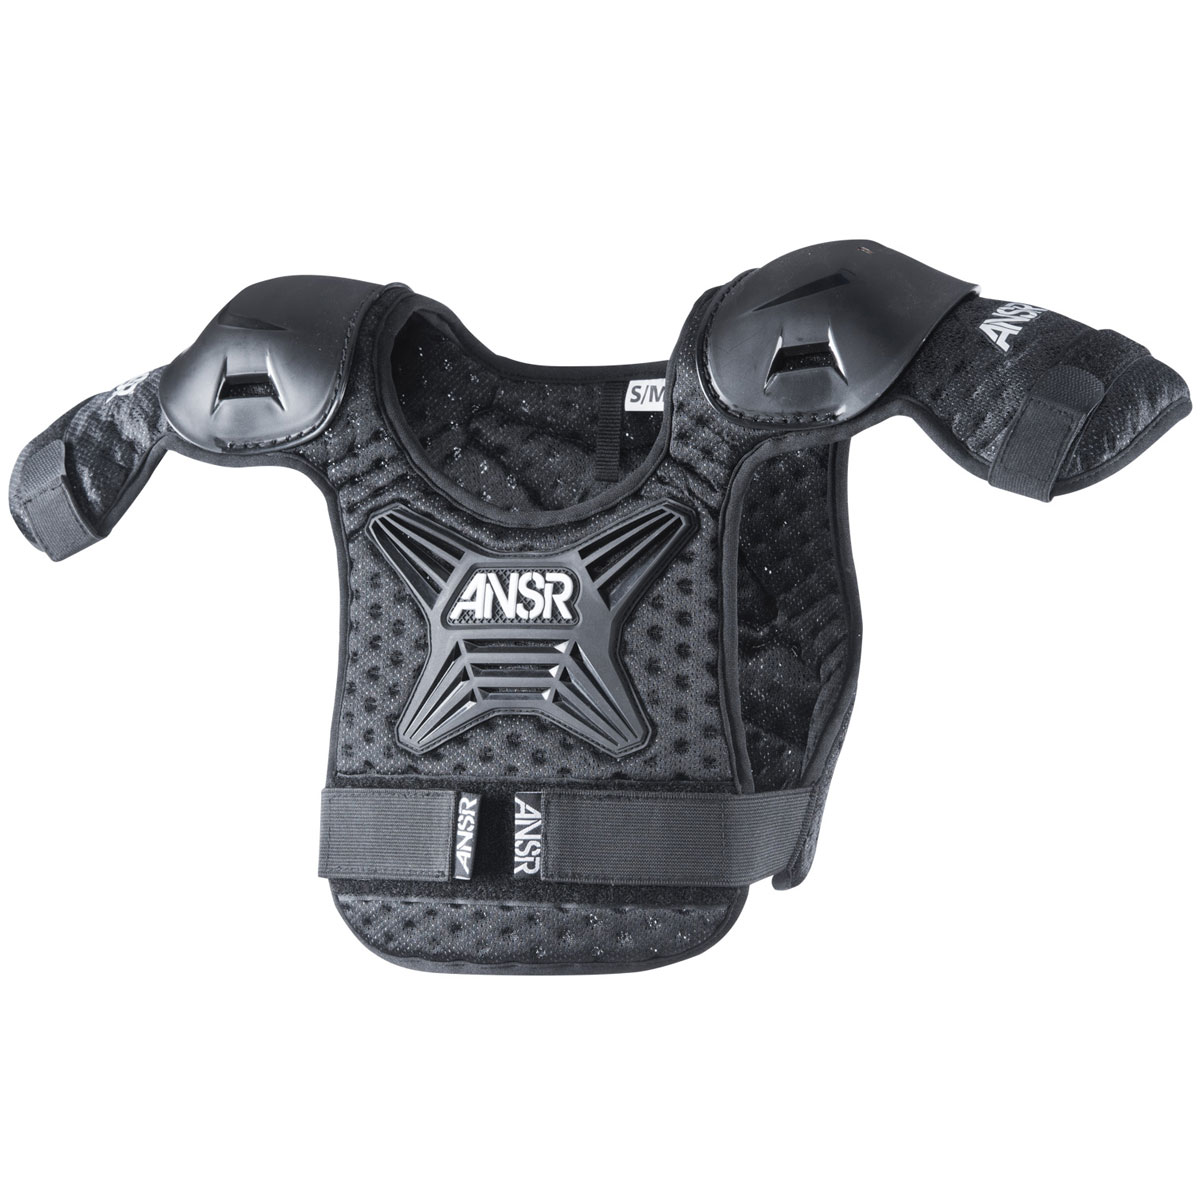 Prodigy Pee Wee Roost Deflector